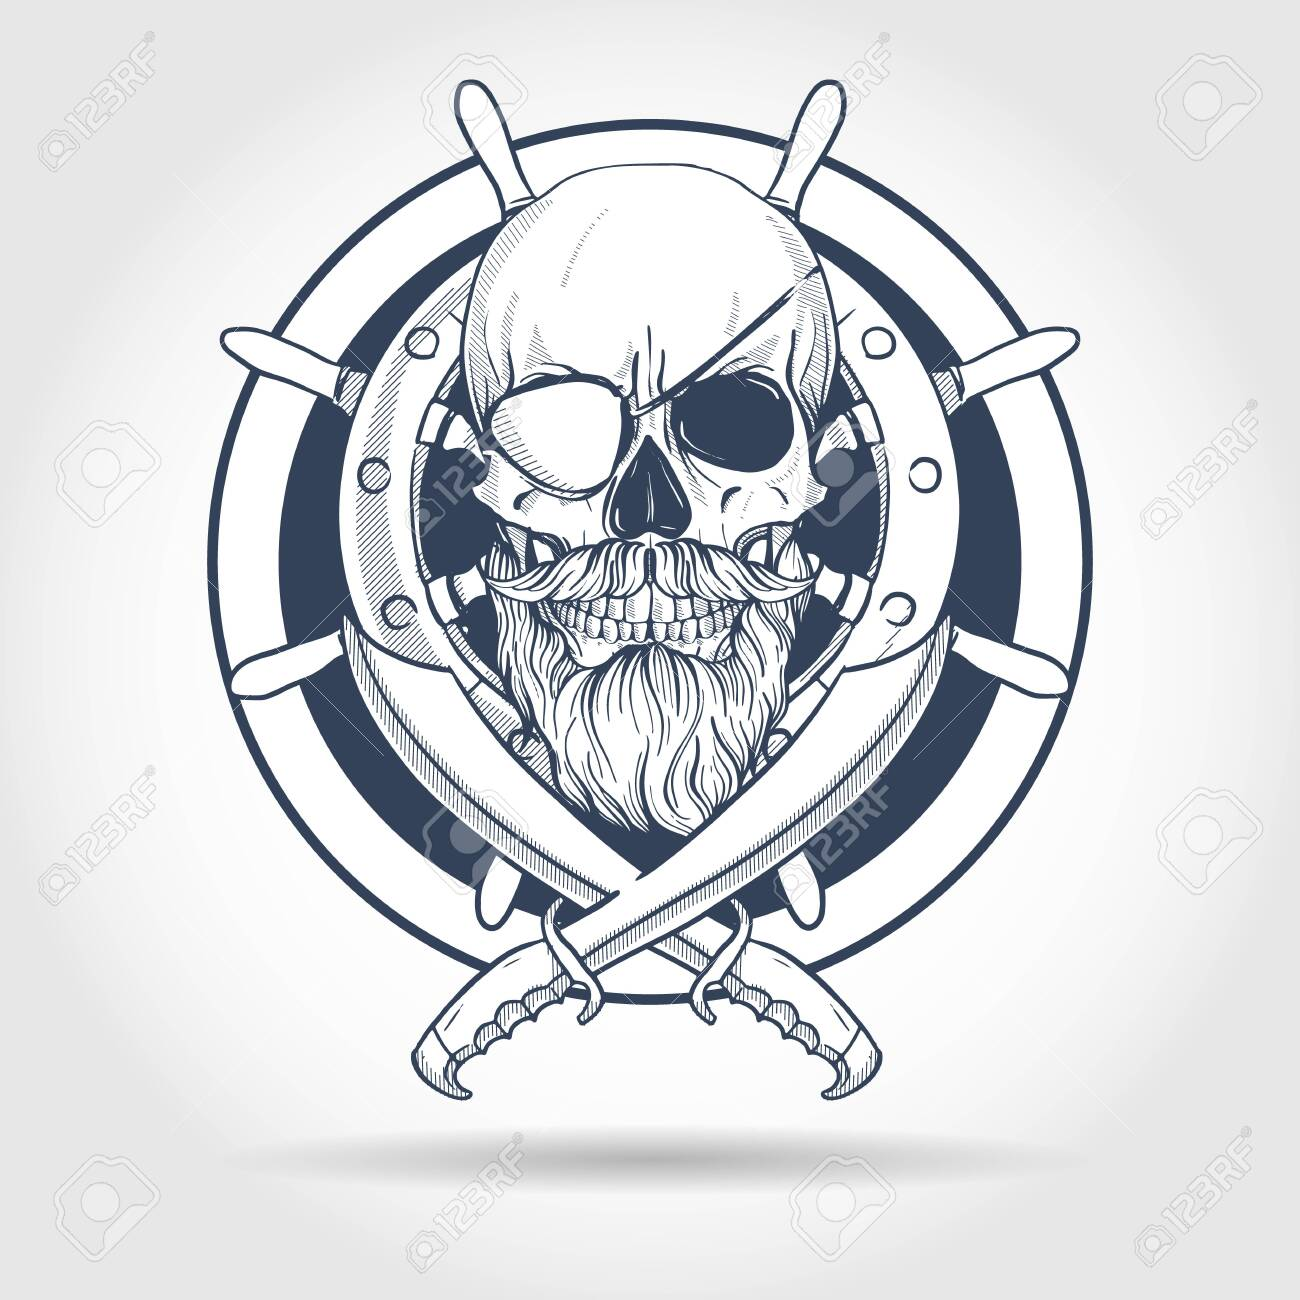 Hand Drawn Sketch Pirate Skull With Sword Beard And Mustaches Royalty Free Cliparts Vectors And Stock Illustration Image 130039558